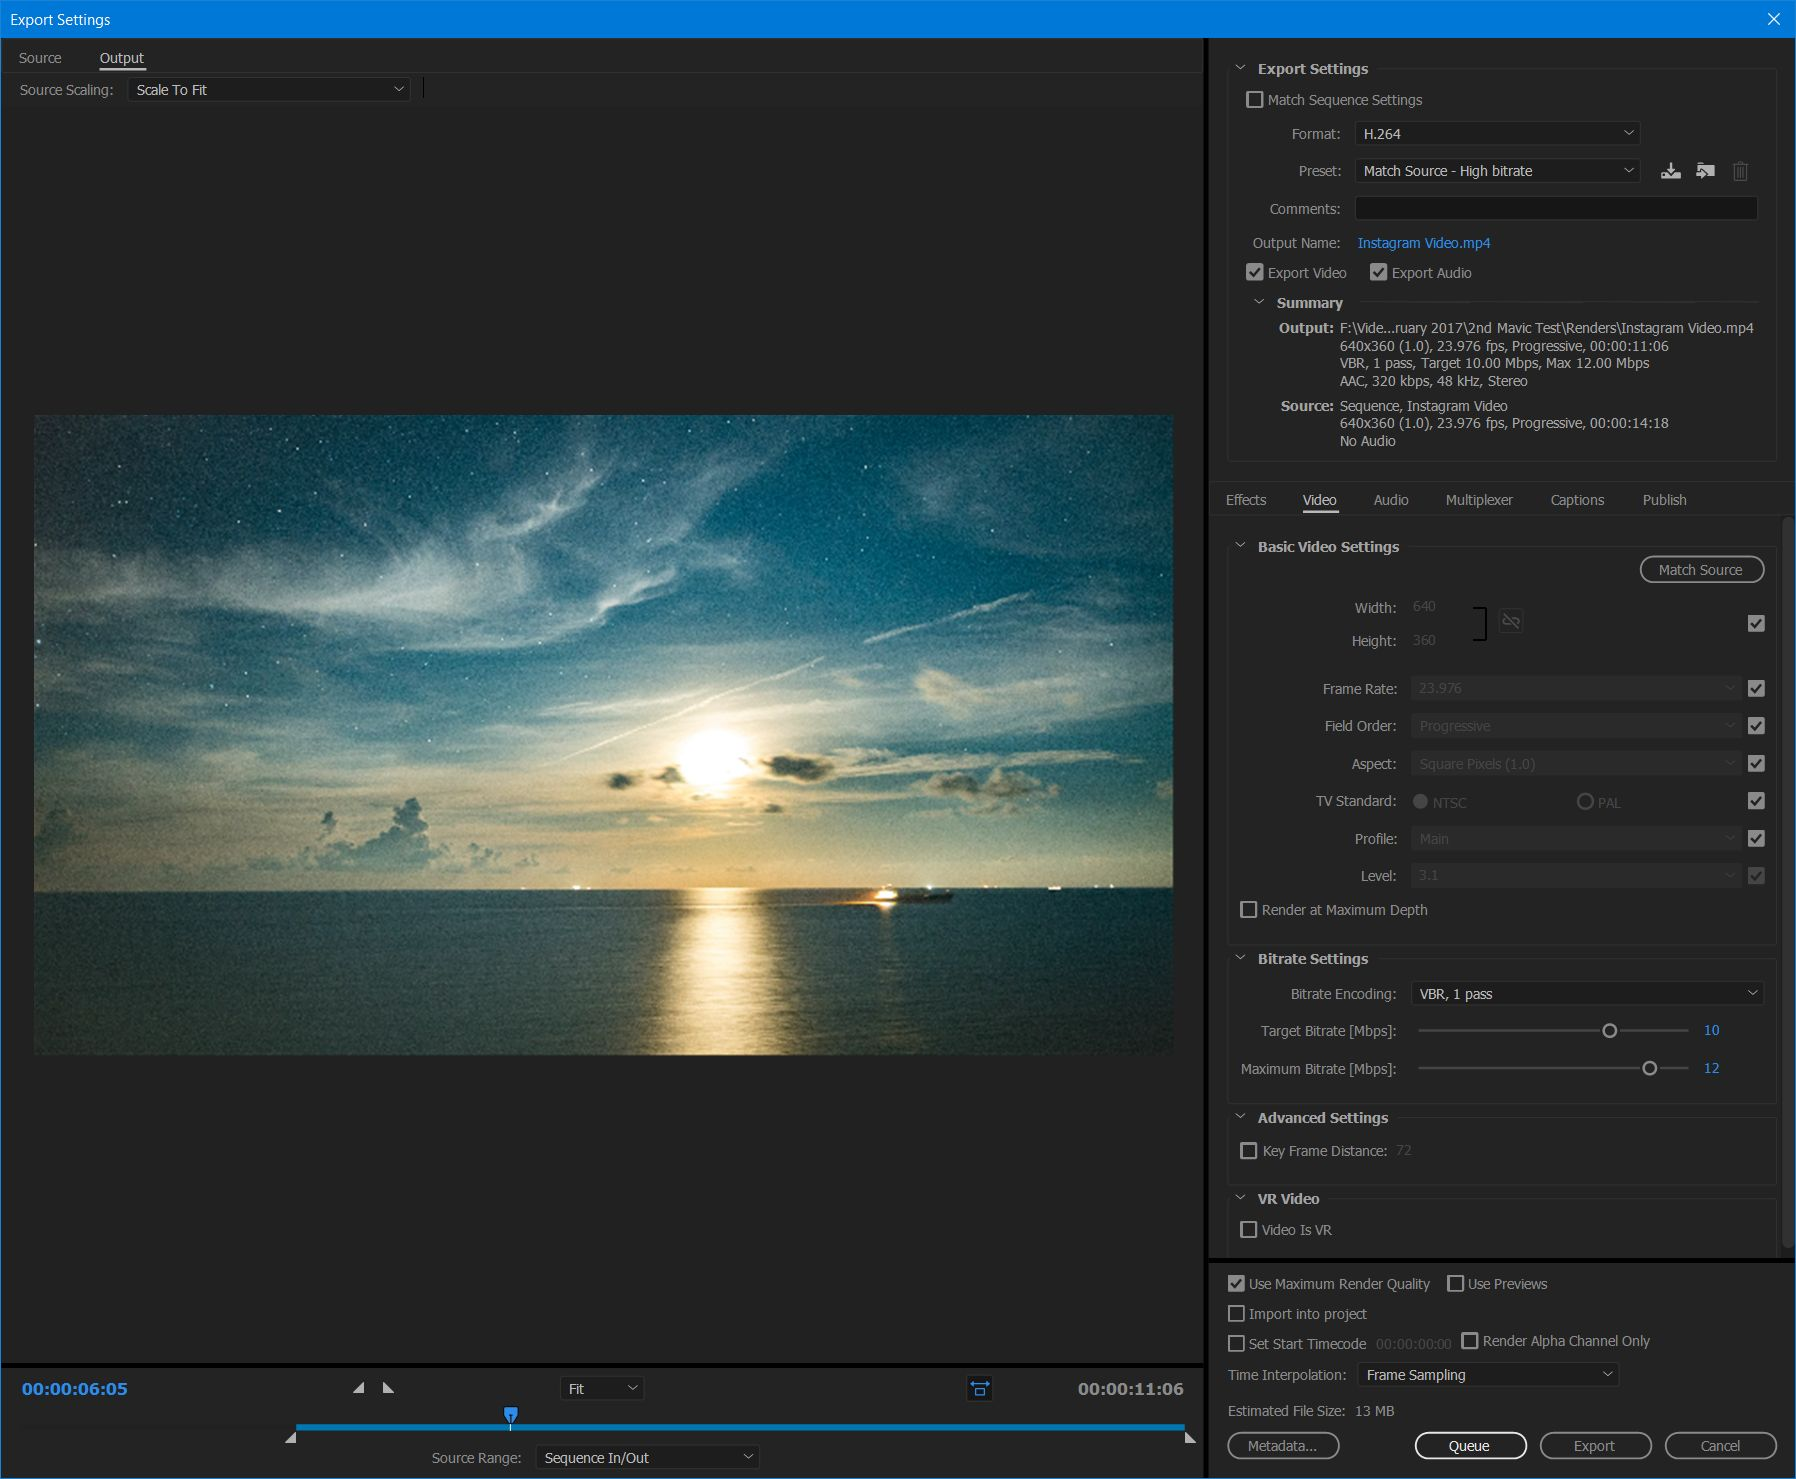 Creating High Quality Instagram Videos Using Adobe Premiere Pro CC